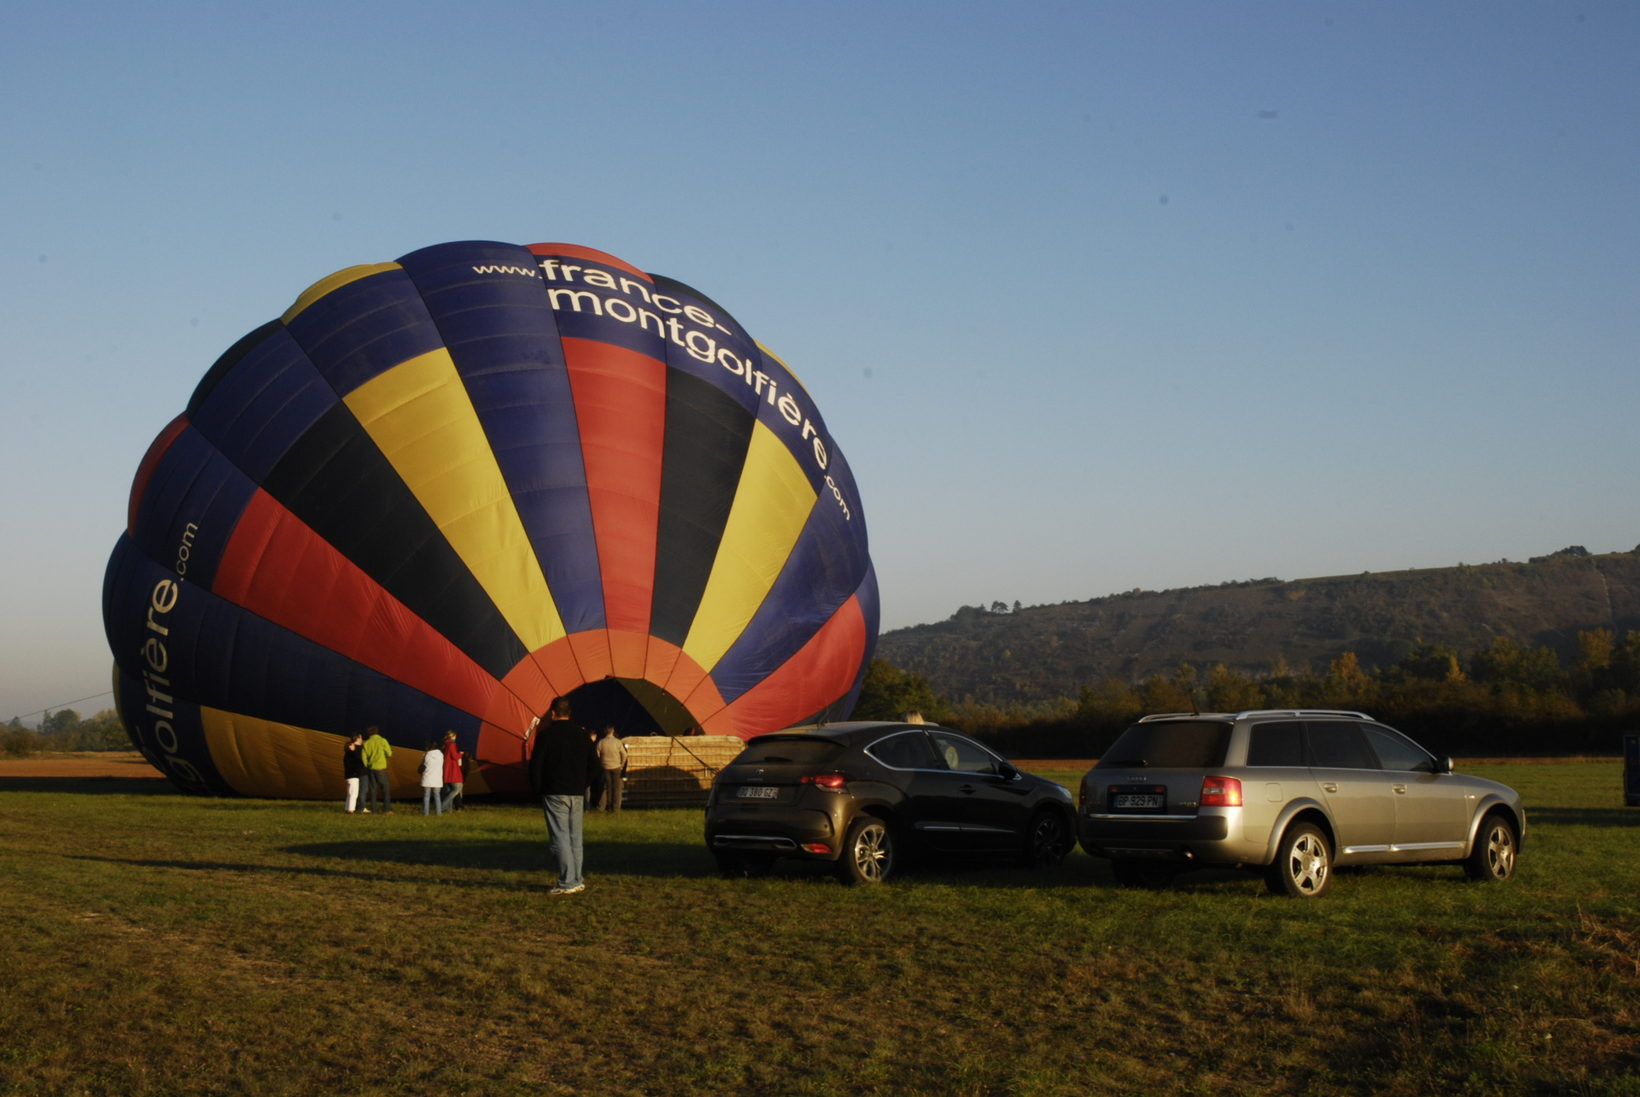 Readying the Balloon